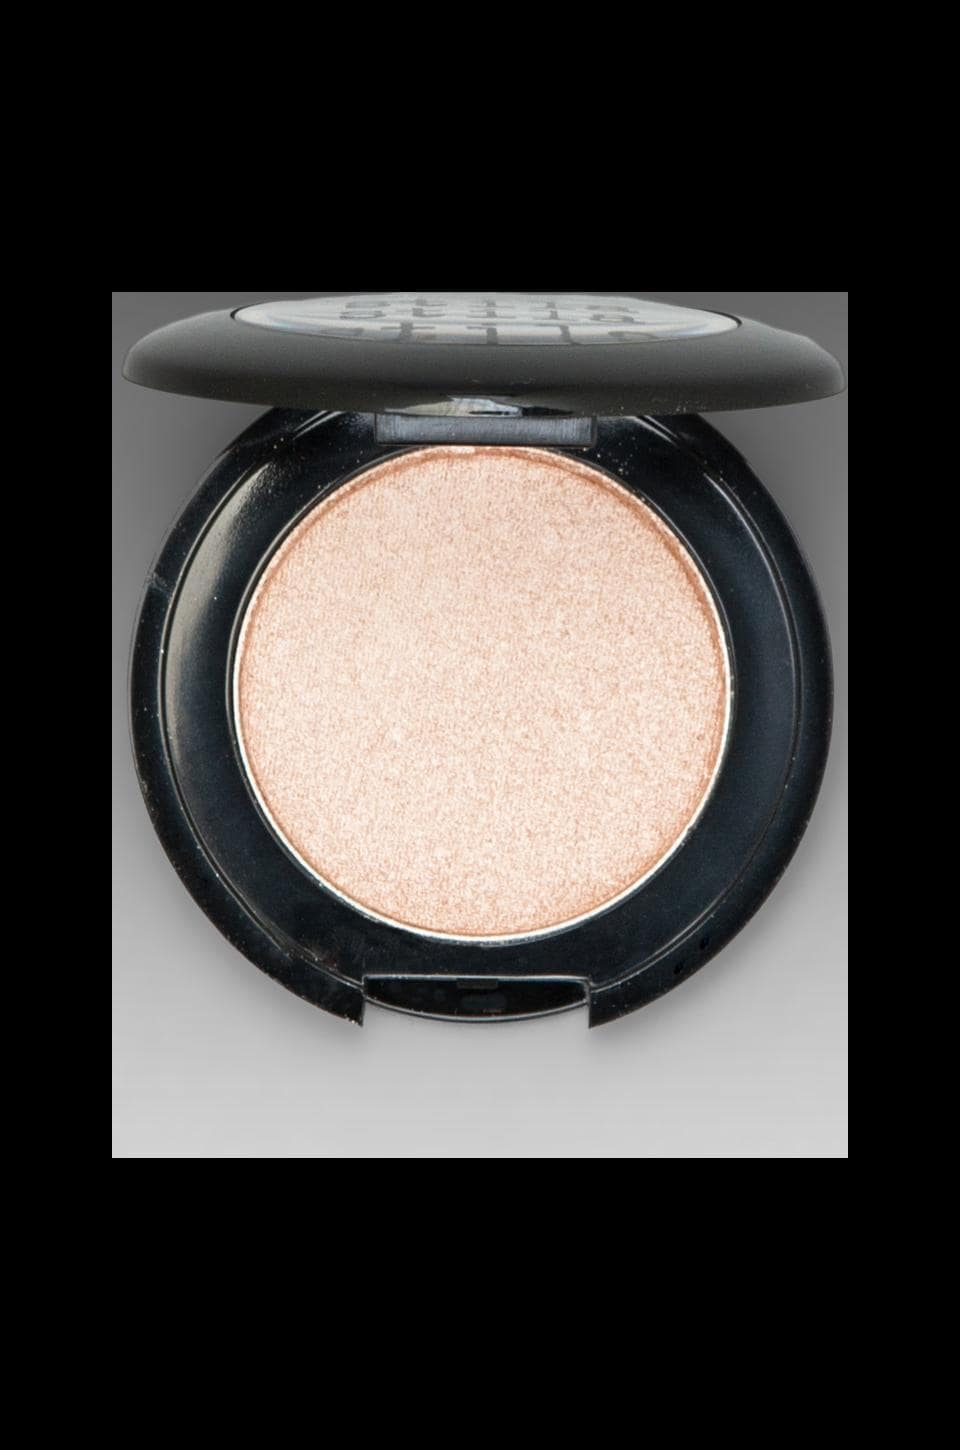 Stila Eye Shadow in Kitten - Shimmering Nude Pink